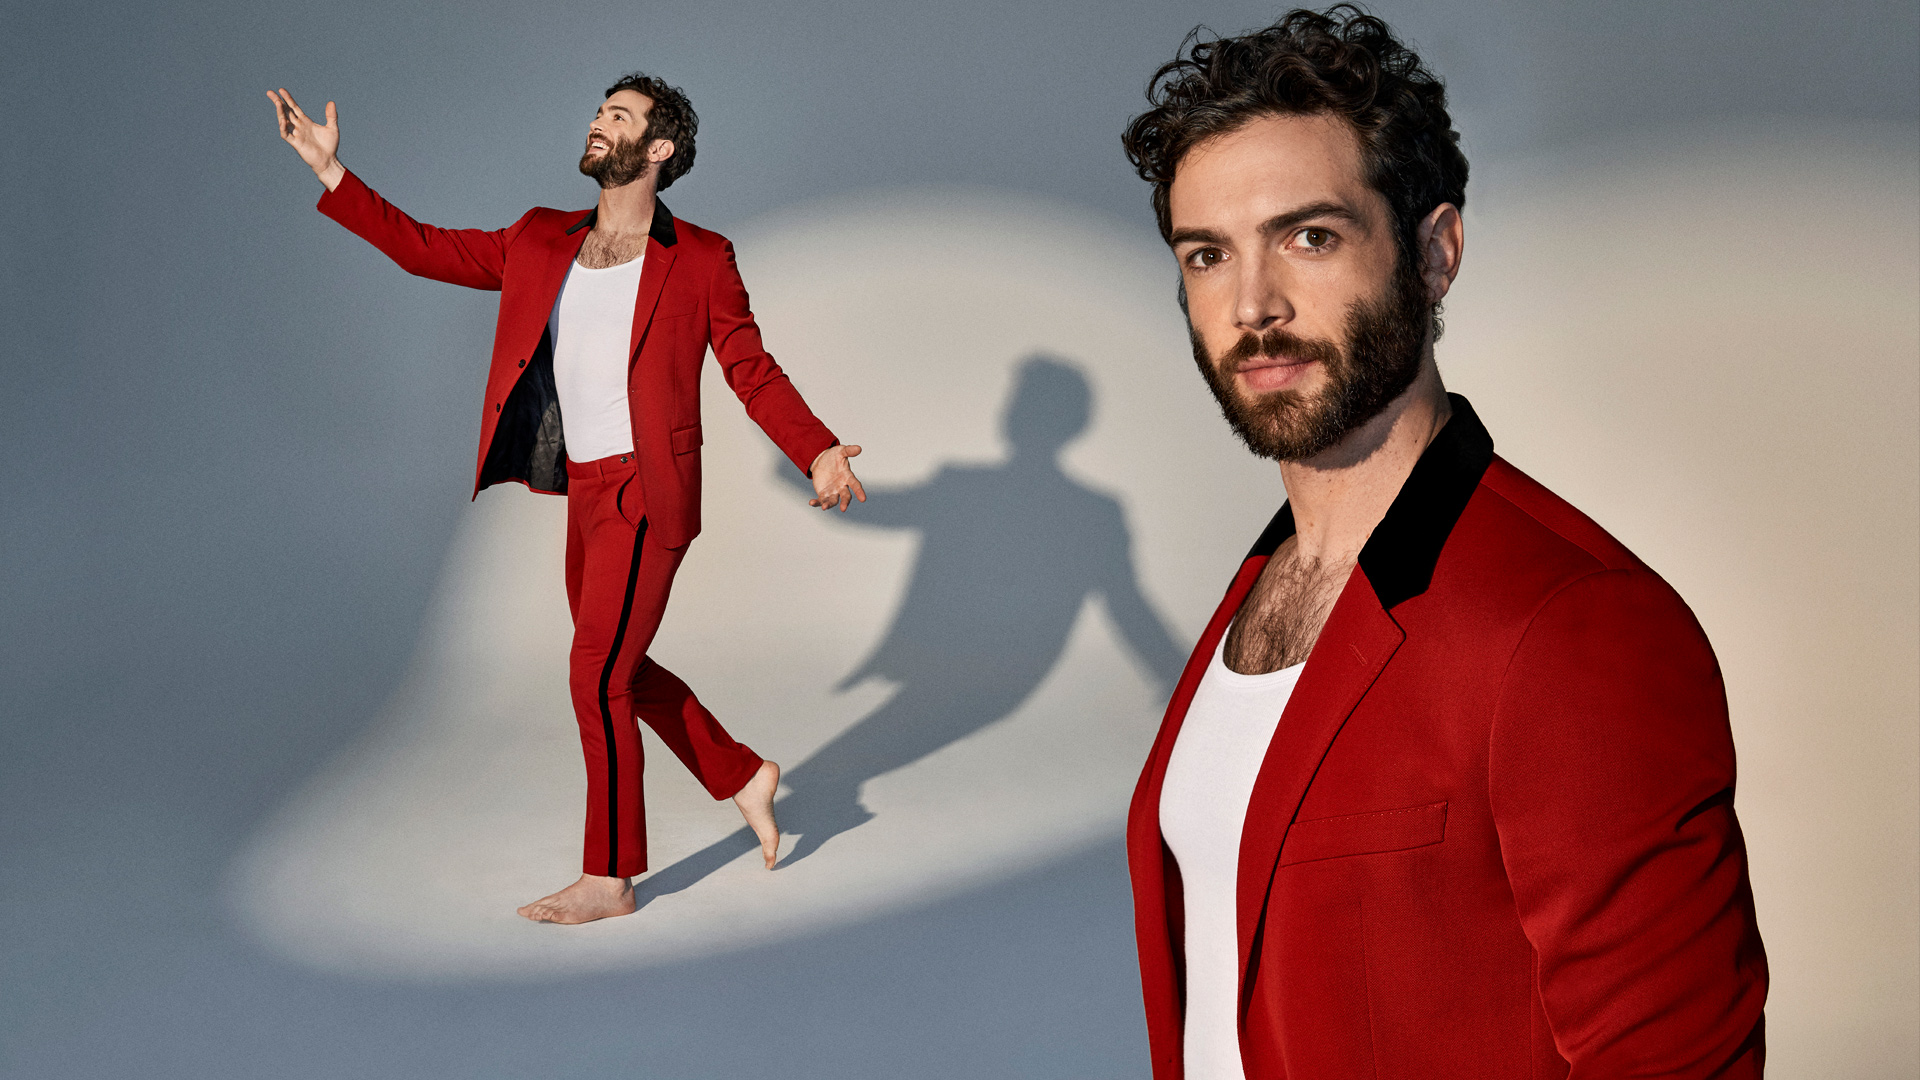 Ethan Peck, especially when he's in the spotlight